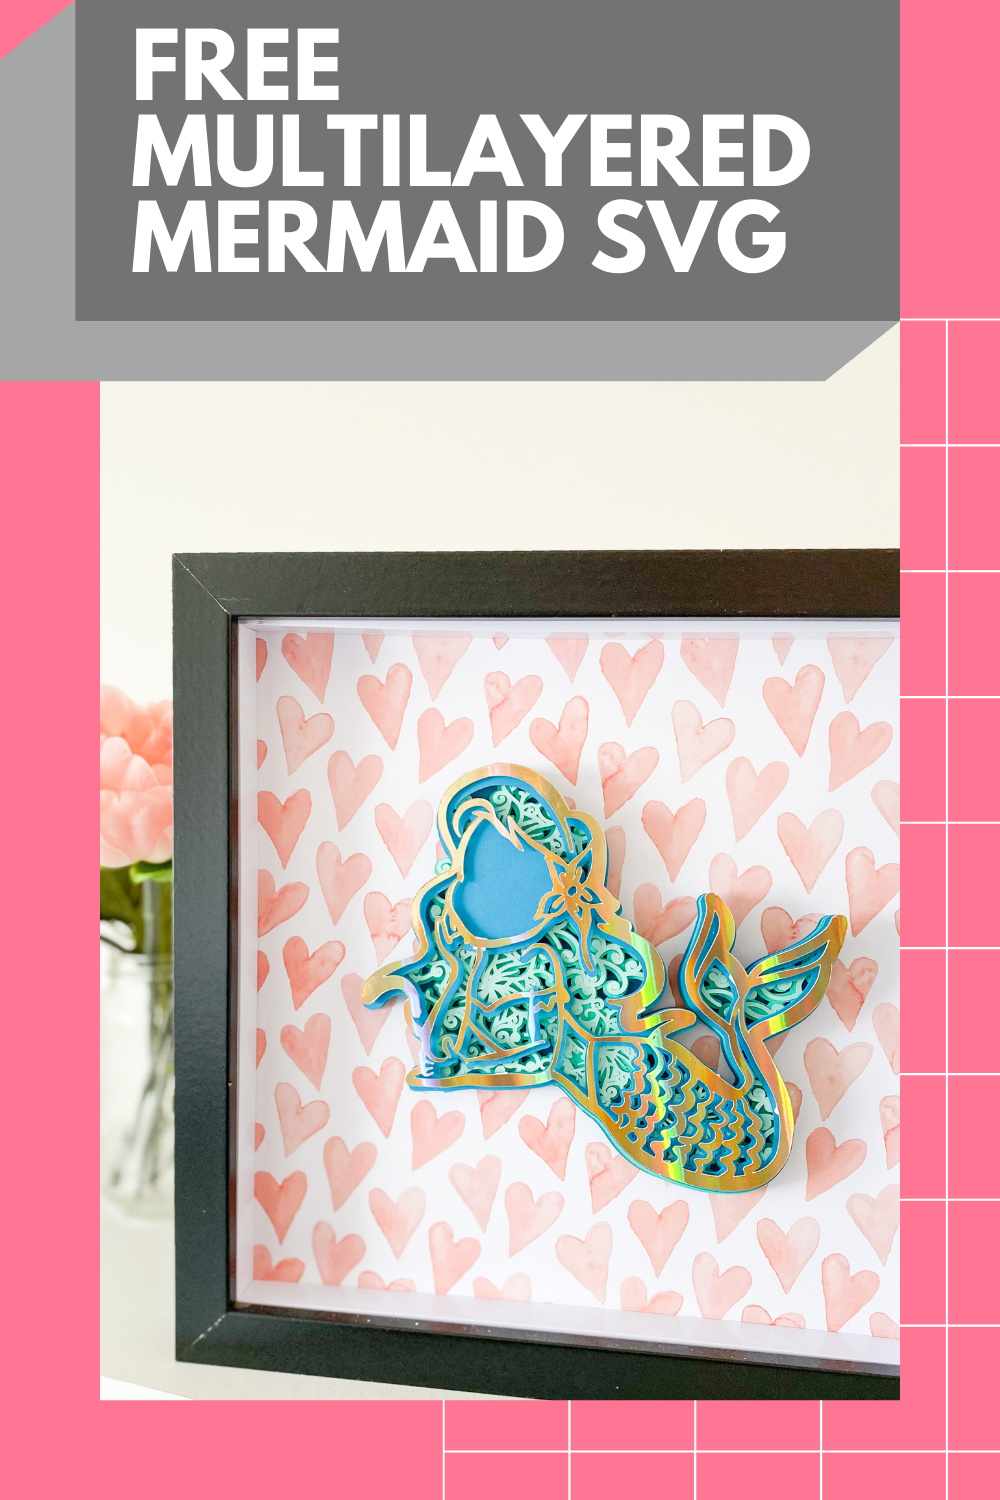 Free Mermaid Mandala Svg : mermaid, mandala, Awesome, Cricut!!!